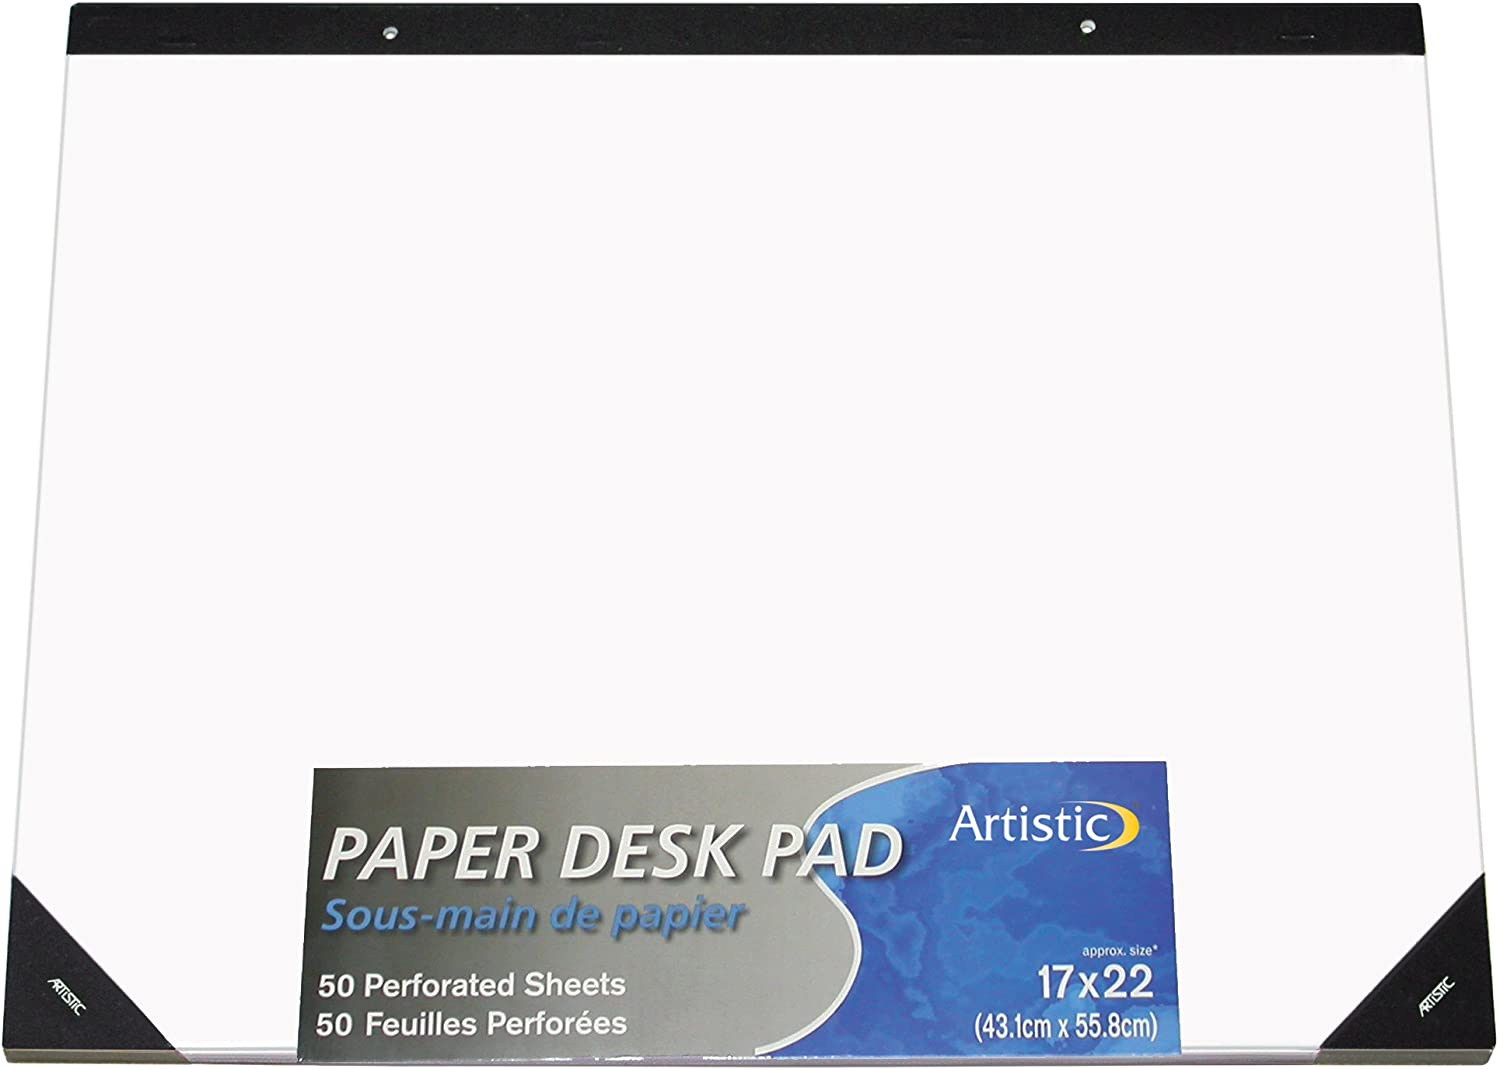 "Artistic 17""x22"" Plain White Paper Drawing & Note Desk Pad, 50 Sheets, Perforated, Ideal for Ideas & Notes, Protects Desks From Scratches and Spills : Office Desk Pads And Blotters : Office Products"